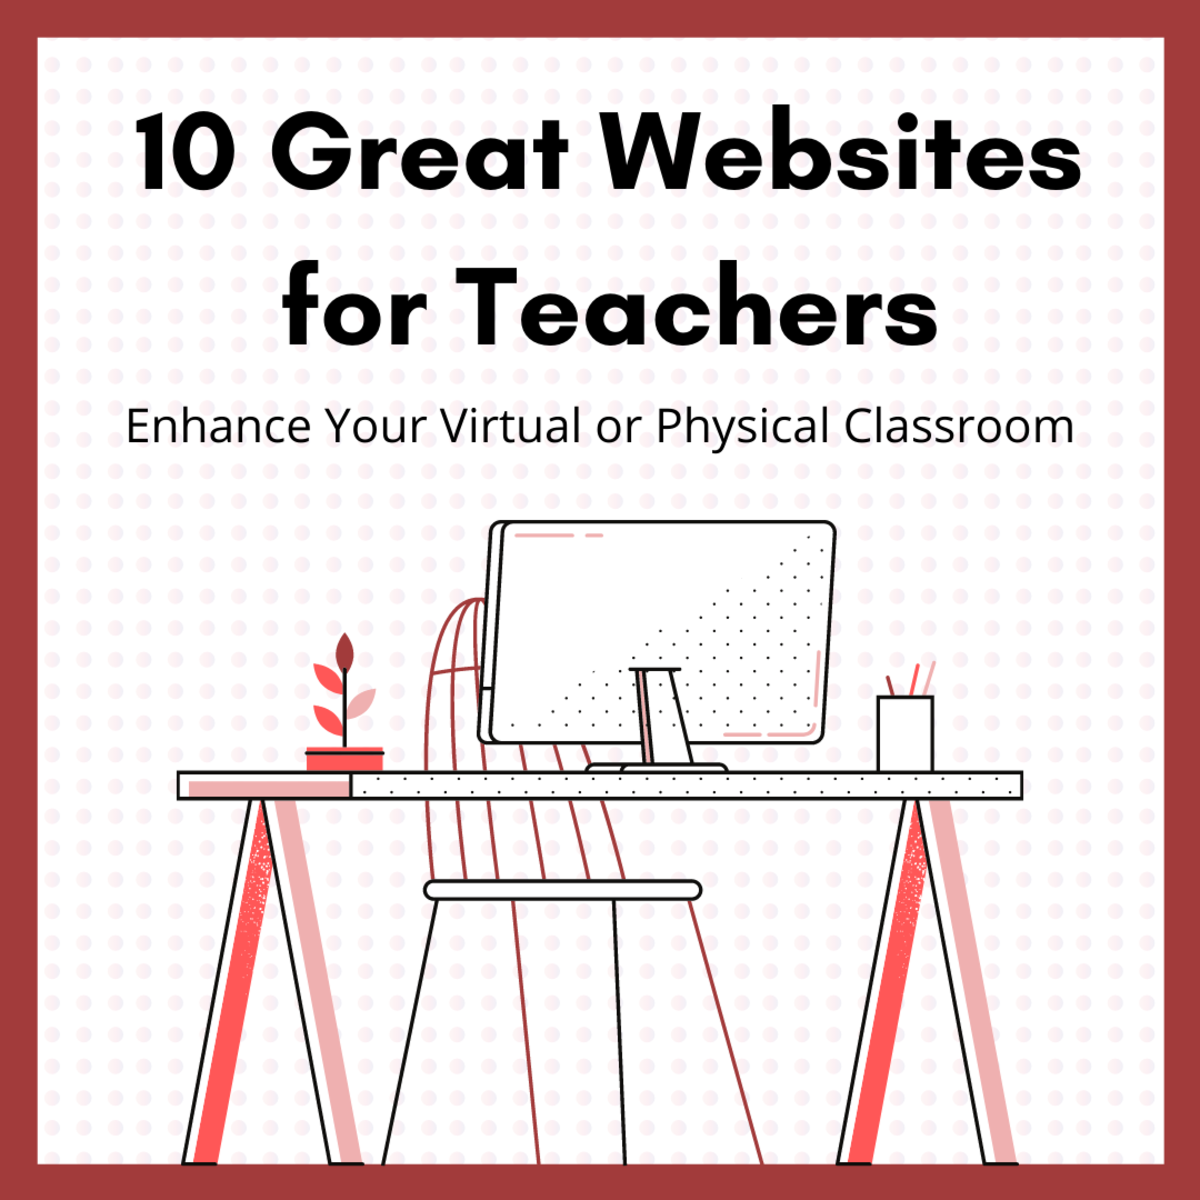 10 Websites to Use This School Year